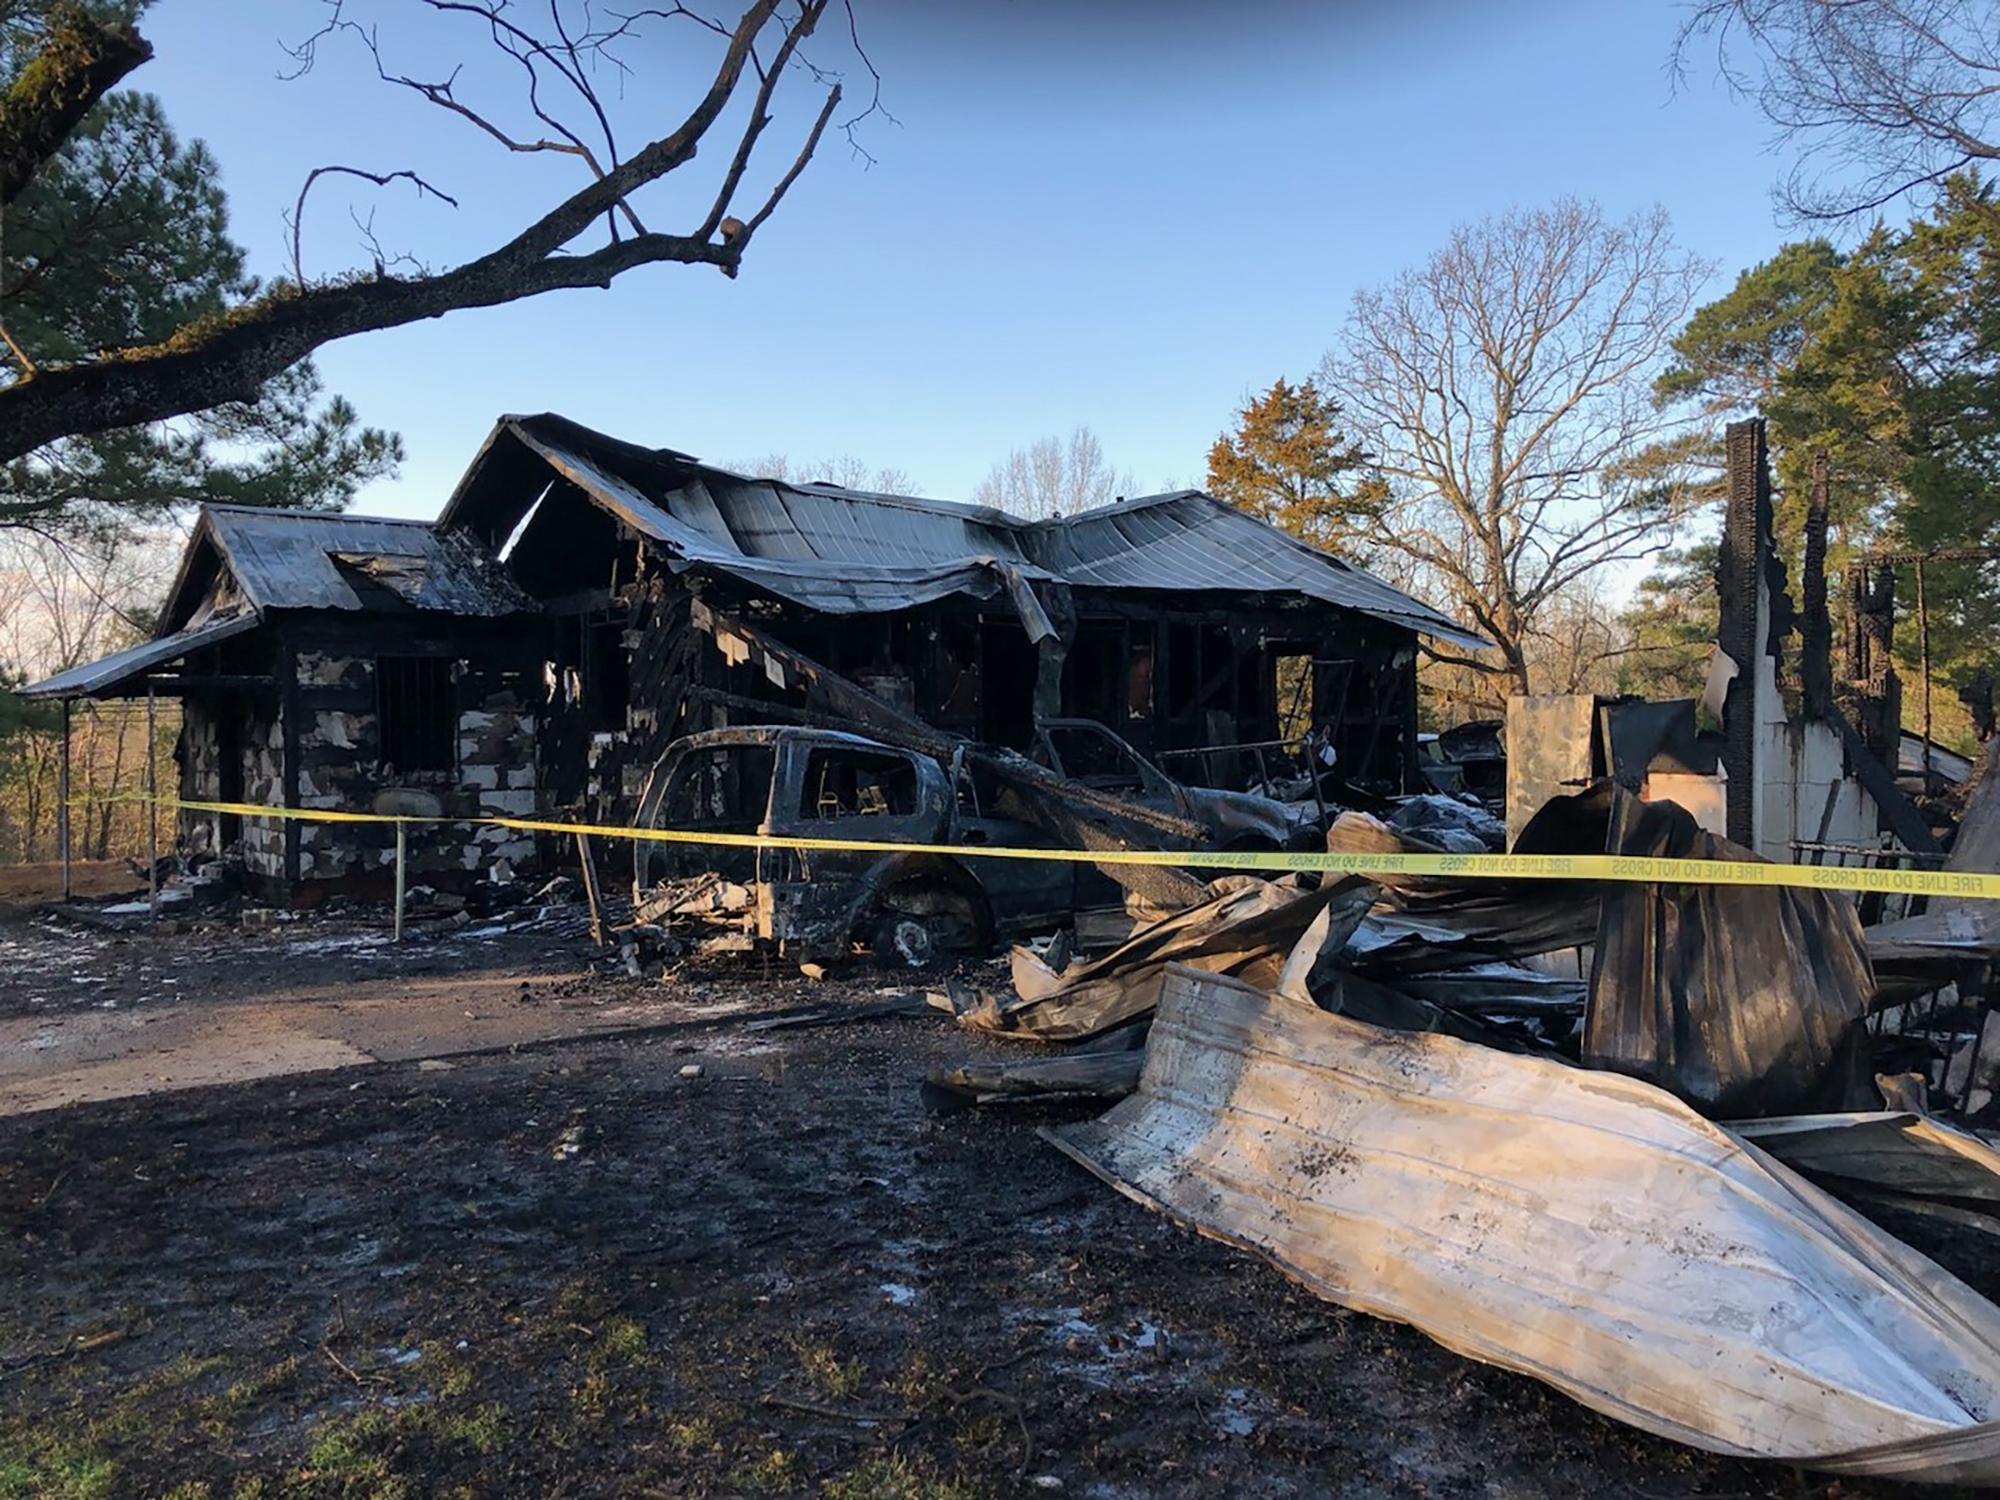 This photo provided by WLBT-TV shows damage to a house after a fatal fire in Clinton, Miss., on Feb. 8, 2020.